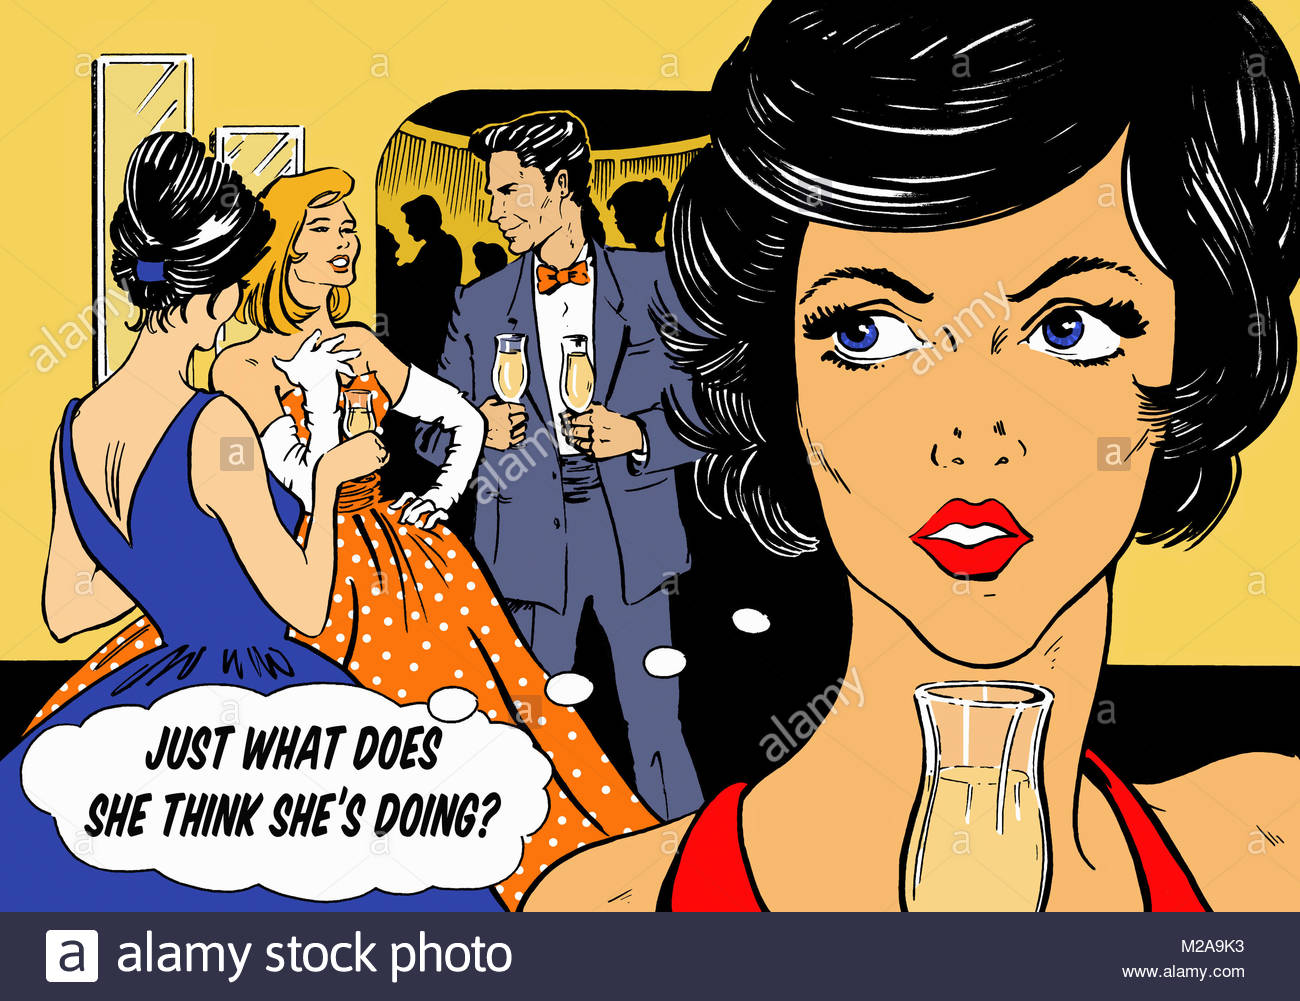 Jealous woman at party - Stock Image